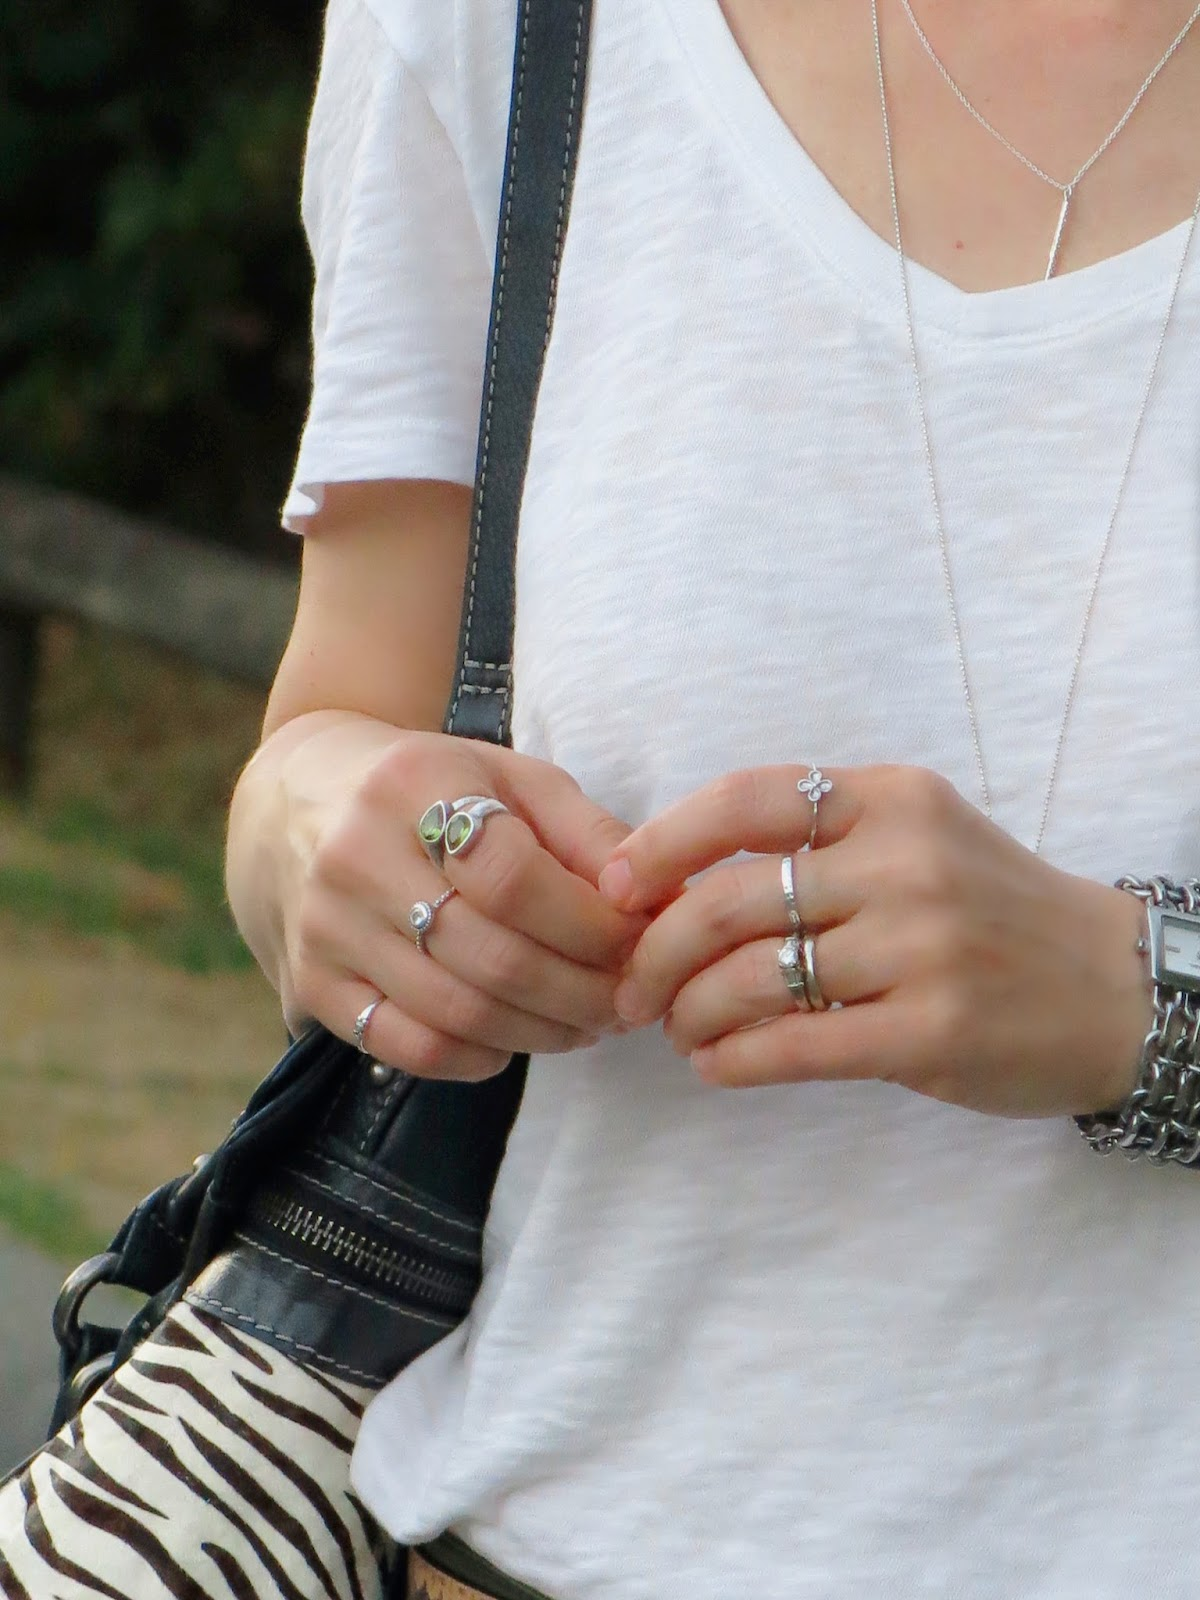 slouchy v-neck white tee and accessories